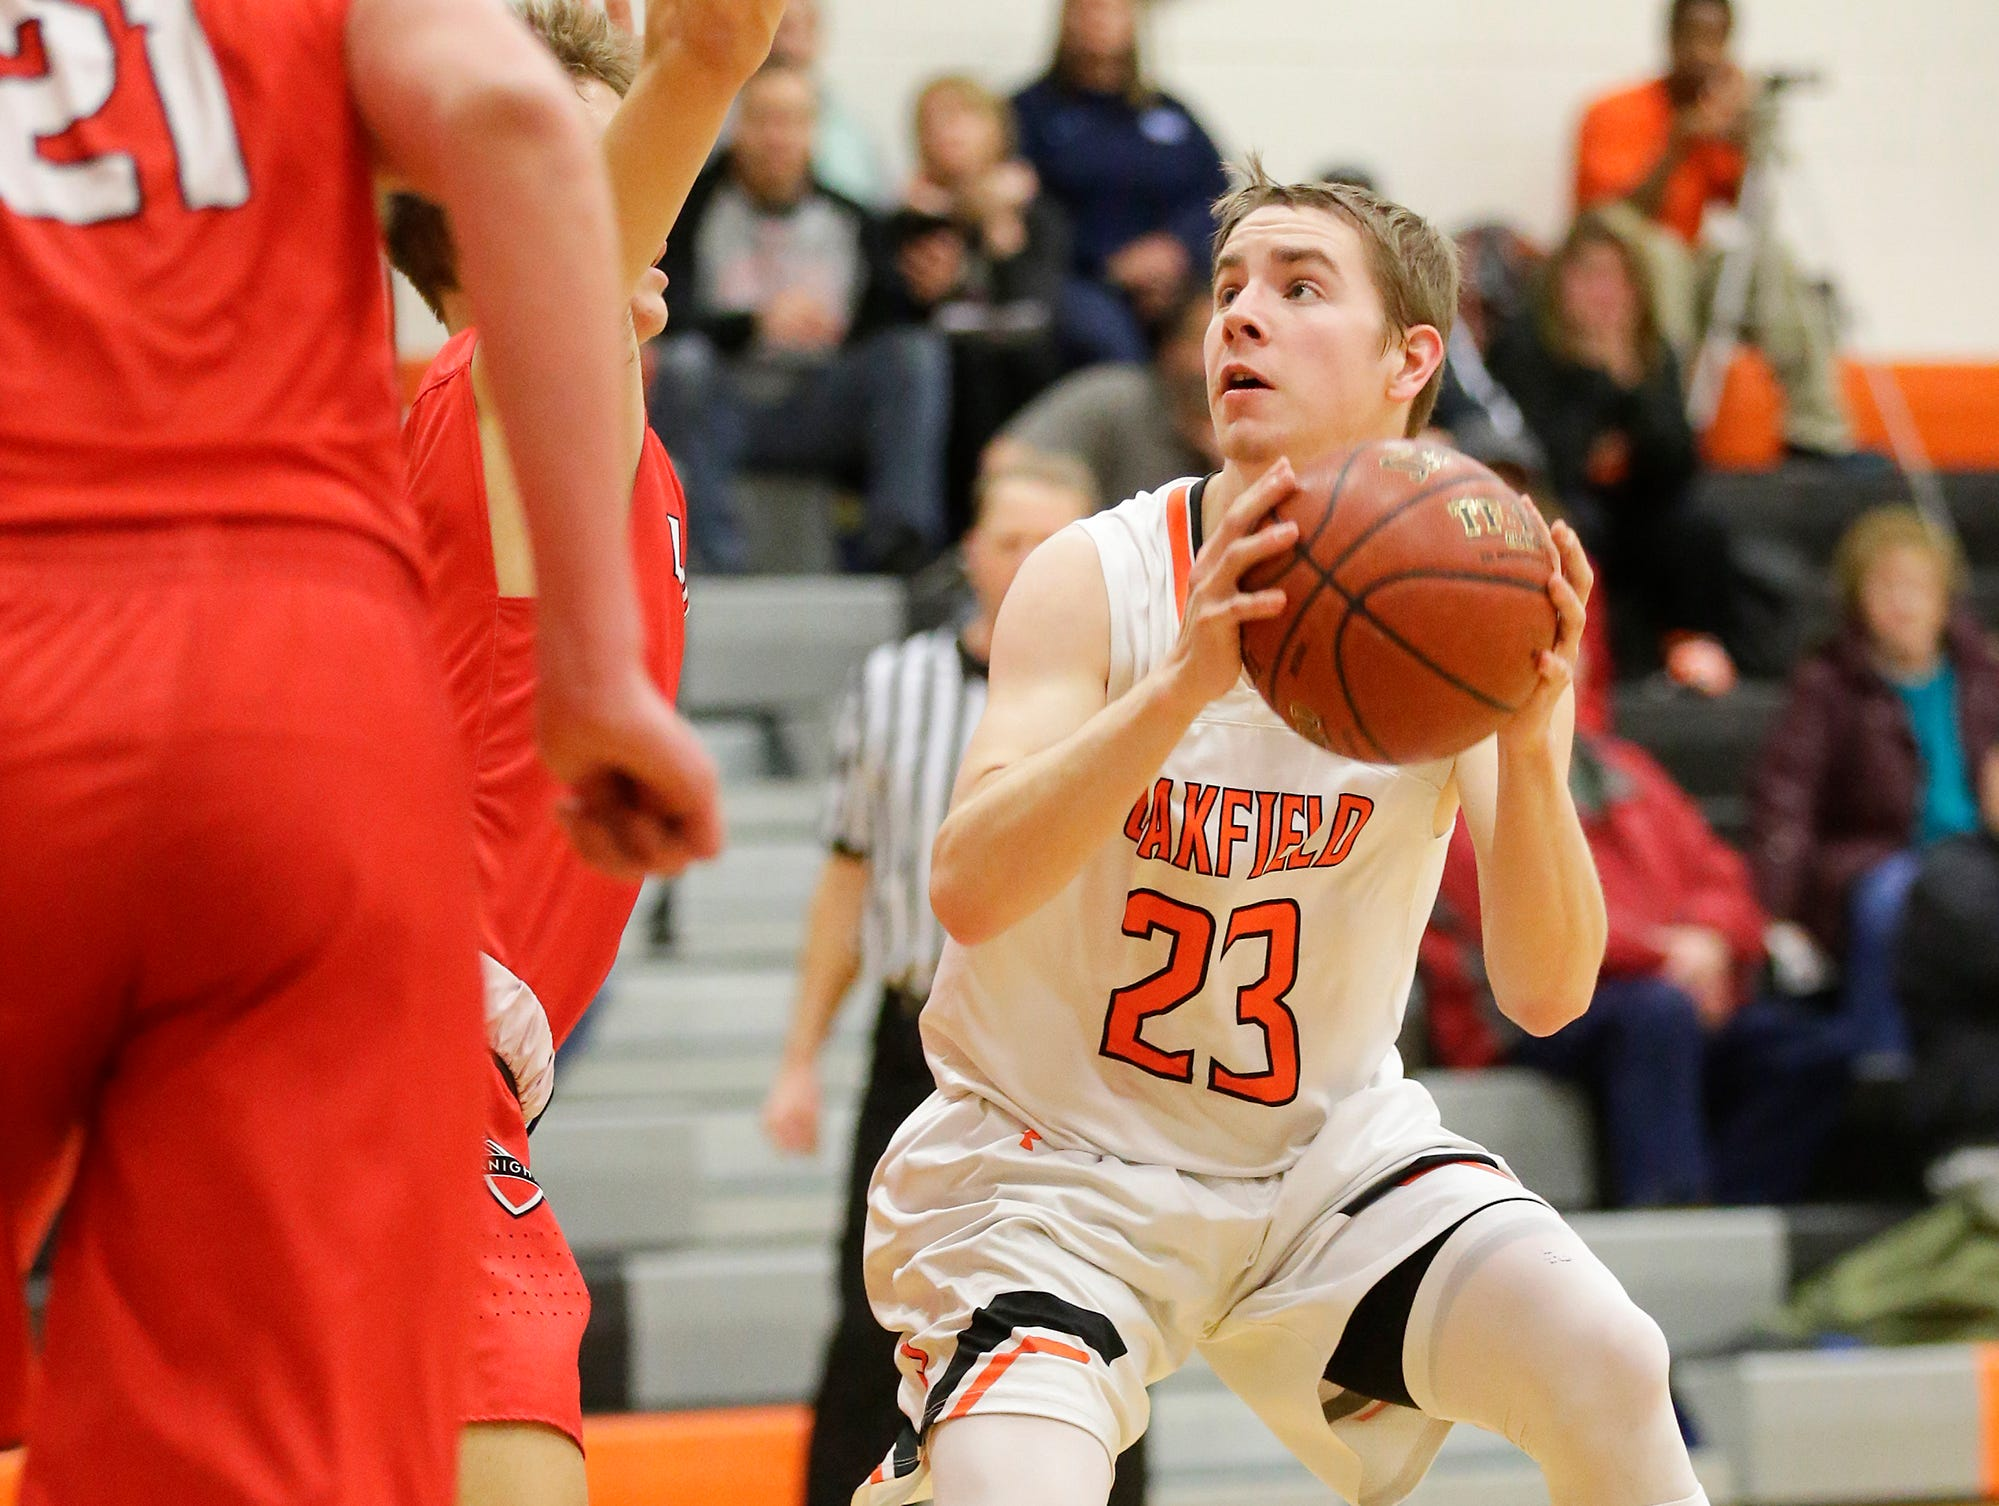 Oakfield High School boys basketball's Max Margelofsky eyes up the basket for a shot against Lourdes Academy of Oshkosh during their game Thursday, January 24, 2019 in Oakfield. Lourdes Academy won the game 83-48. Doug Raflik/USA TODAY NETWORK-Wisconsin